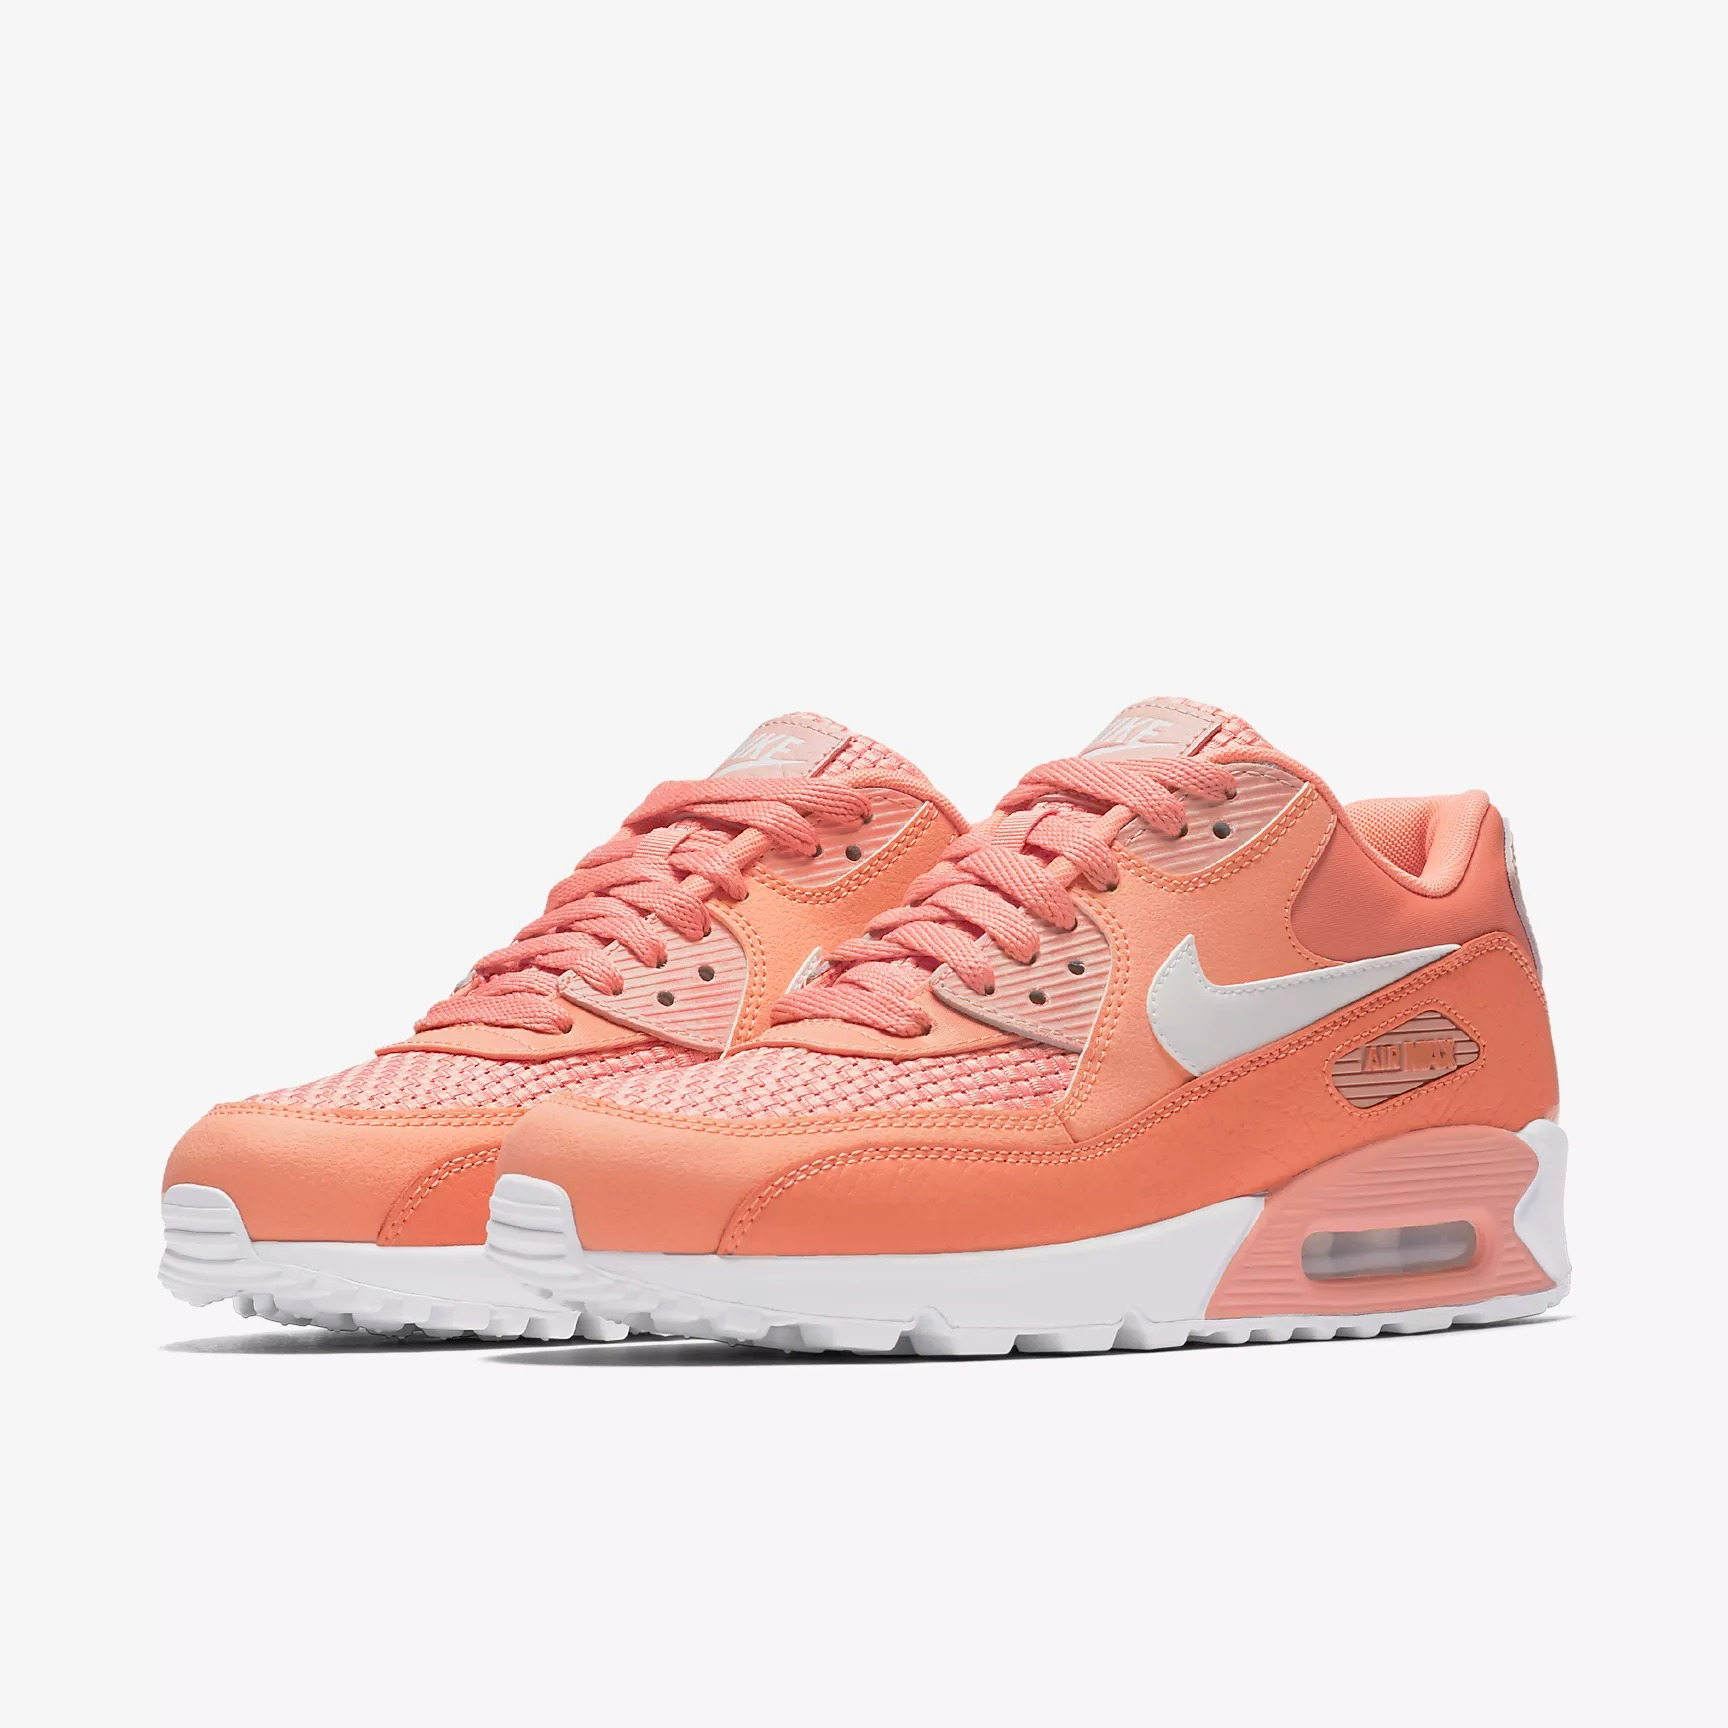 best website 597c8 8e6b8 Nike Wmns Air Max 90 SE Sneakers - SPORT SHOES Lifestyle Shoes   Sneakers -  Superfanas.lt